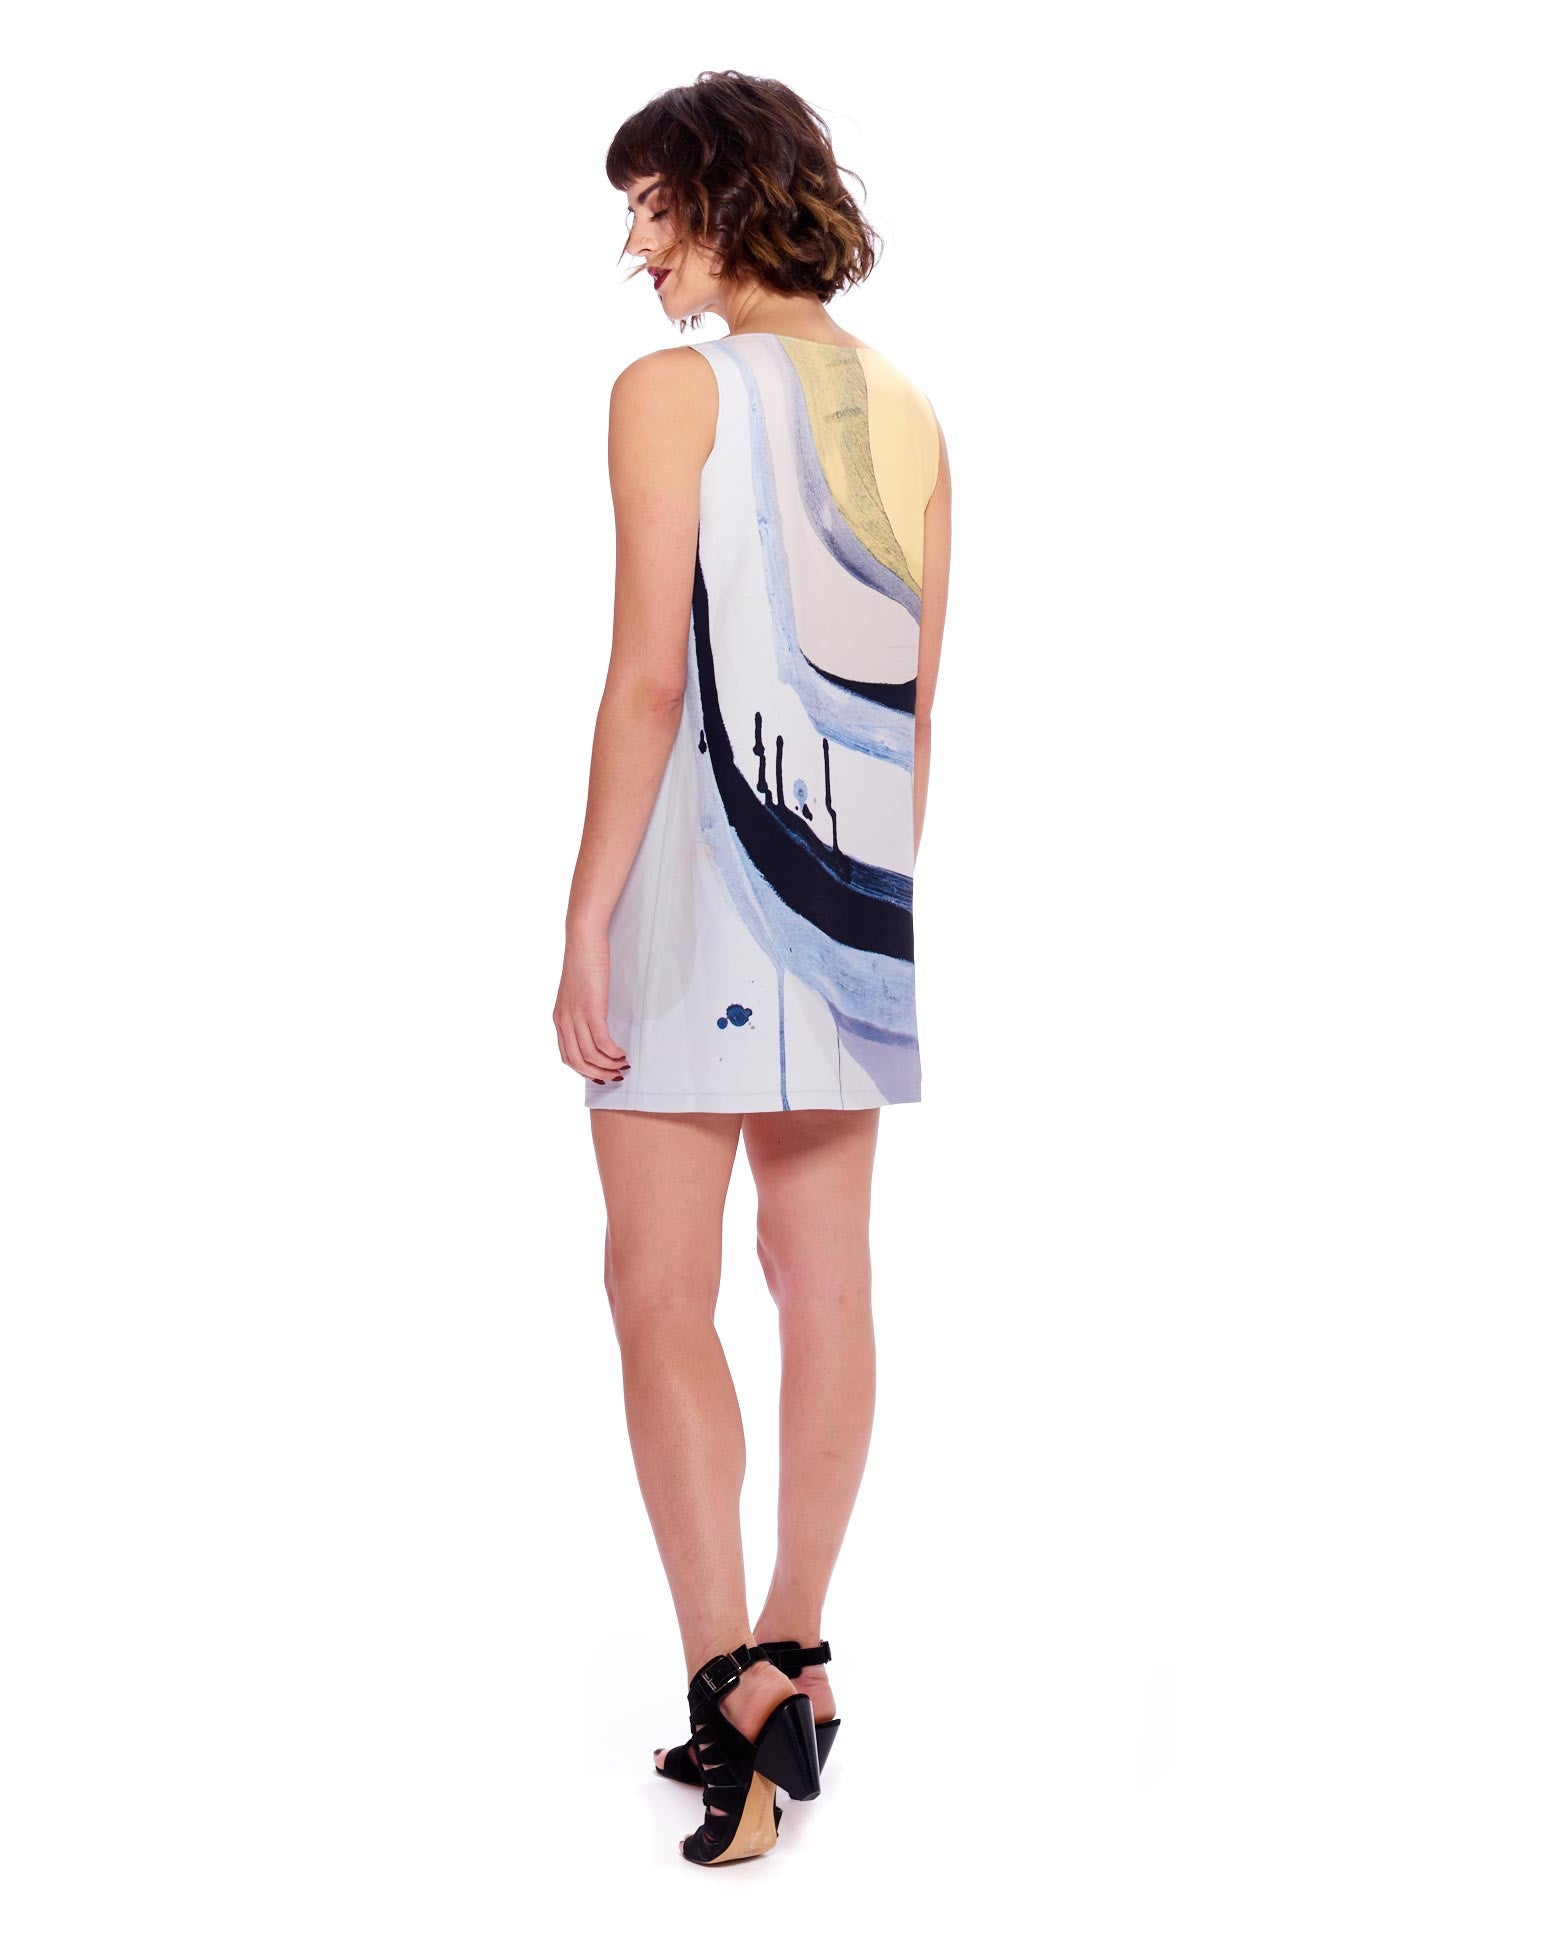 Testing Limits Shift Dress - Nuvango Gallery & Goods - 3